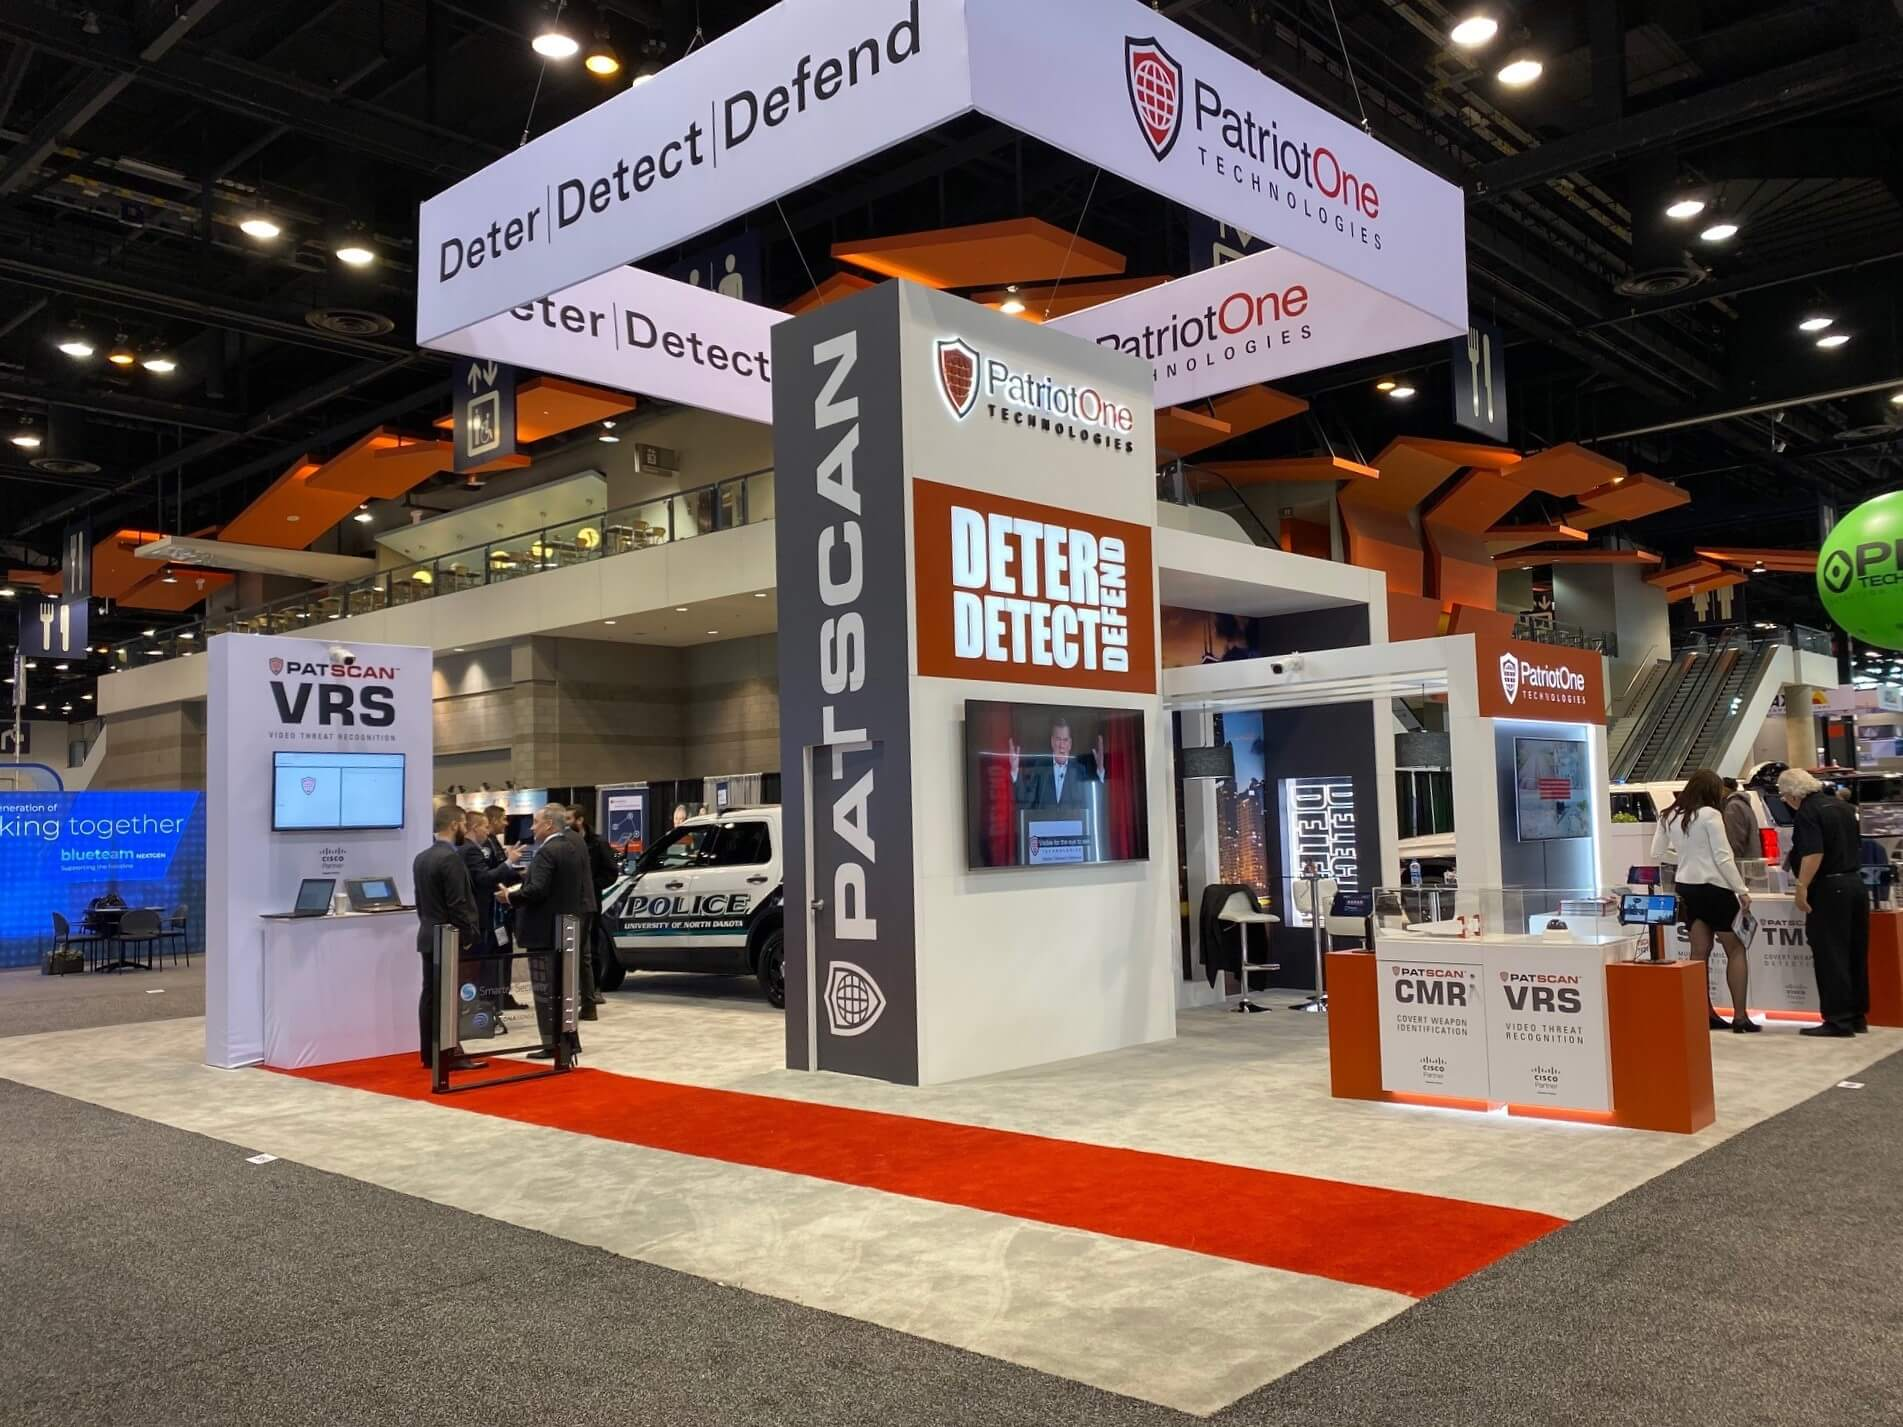 A past project from accordex, events or exhibits or millwork fabrication.